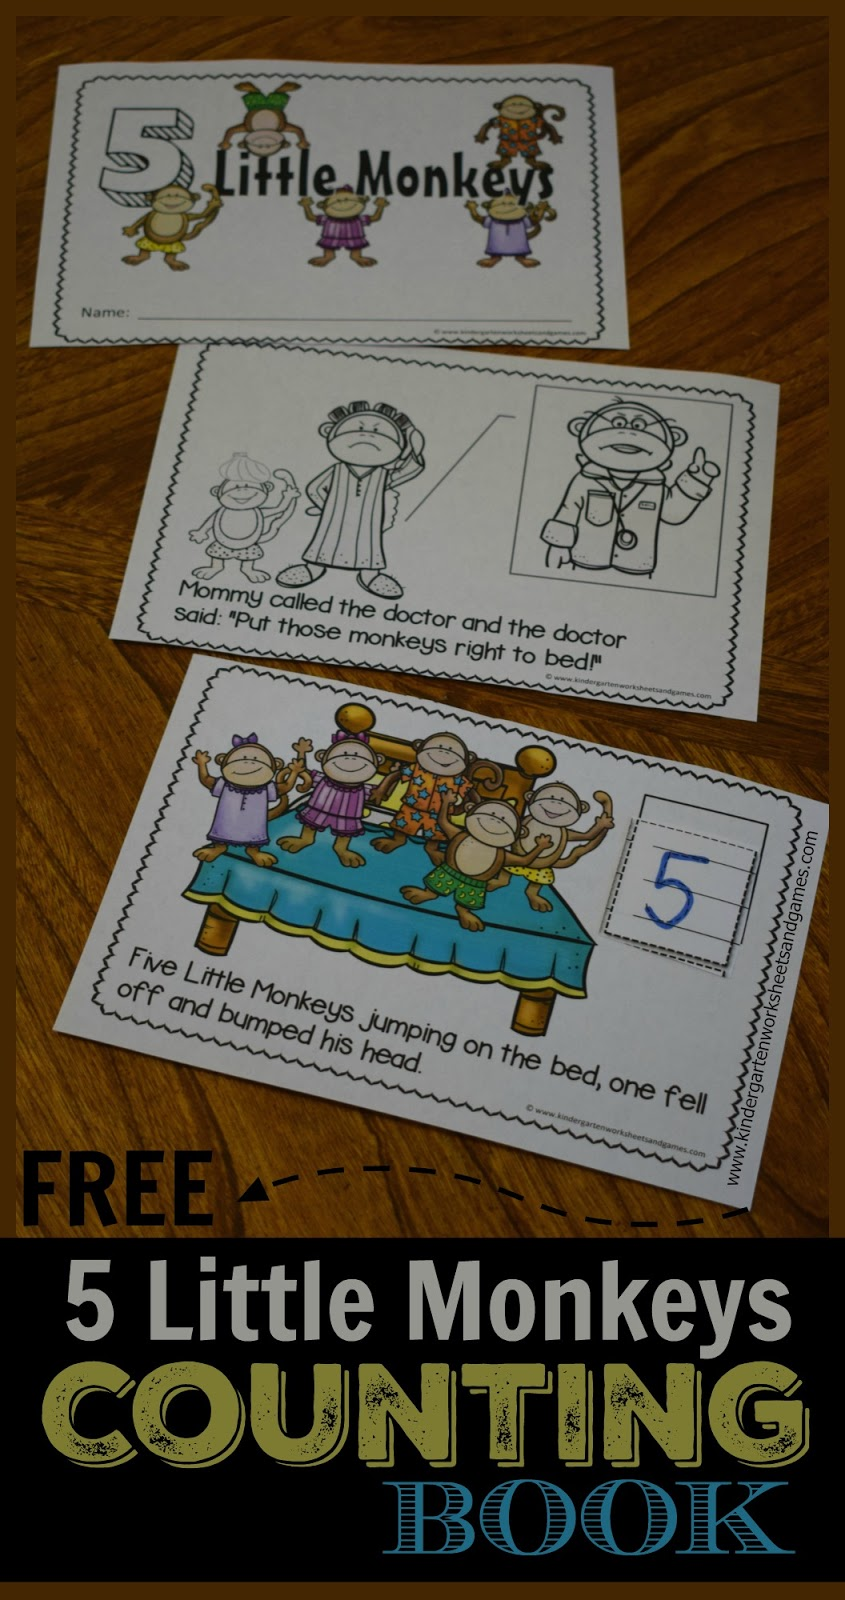 Kindergarten Worksheets and Games: FREE 5 Little Monkeys Counting Book